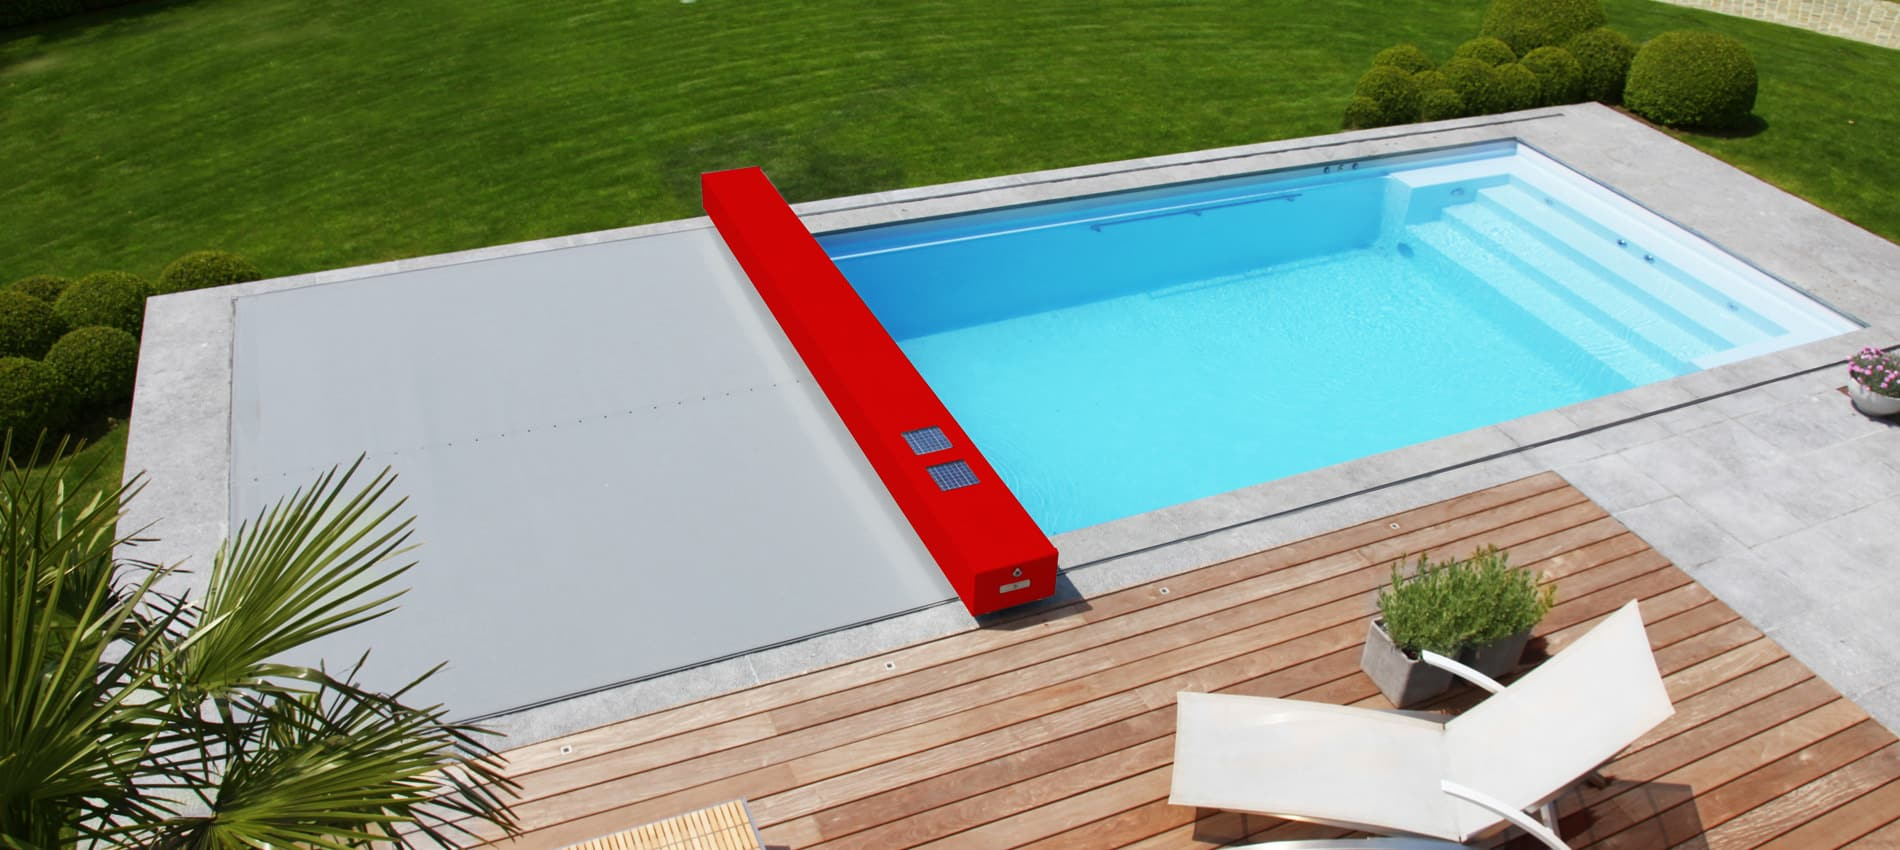 Couverture de securite pour piscine filet d 39 hivernage for Securite piscine